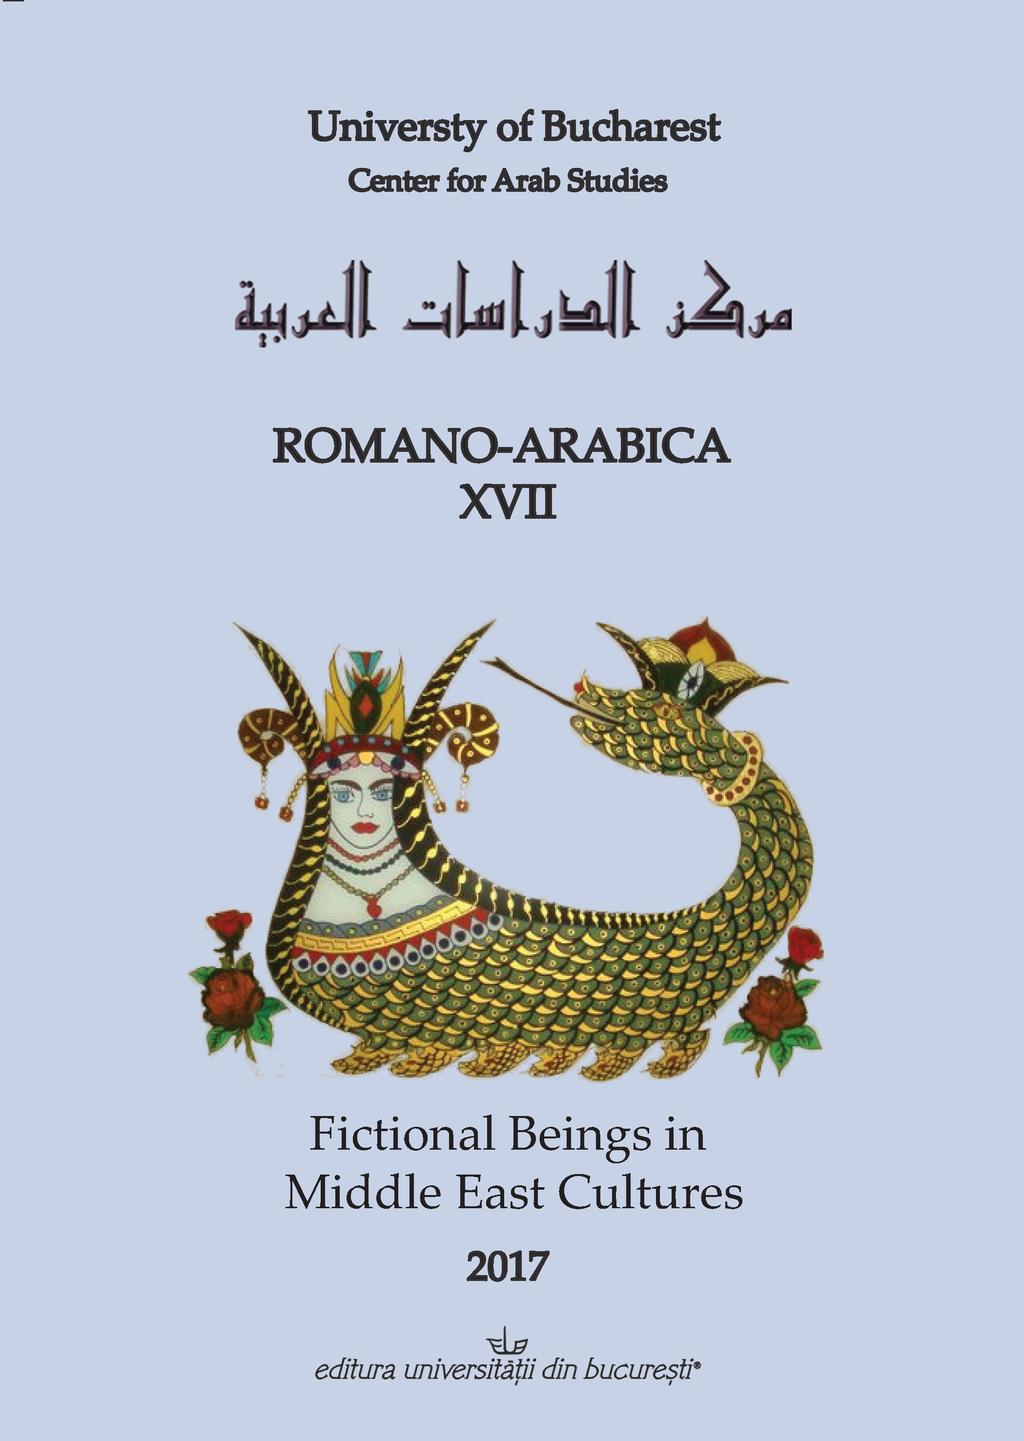 Chambre Obscure Def Romano Arabica Xvii Fictional Beings In Middle East Cultures Pdf